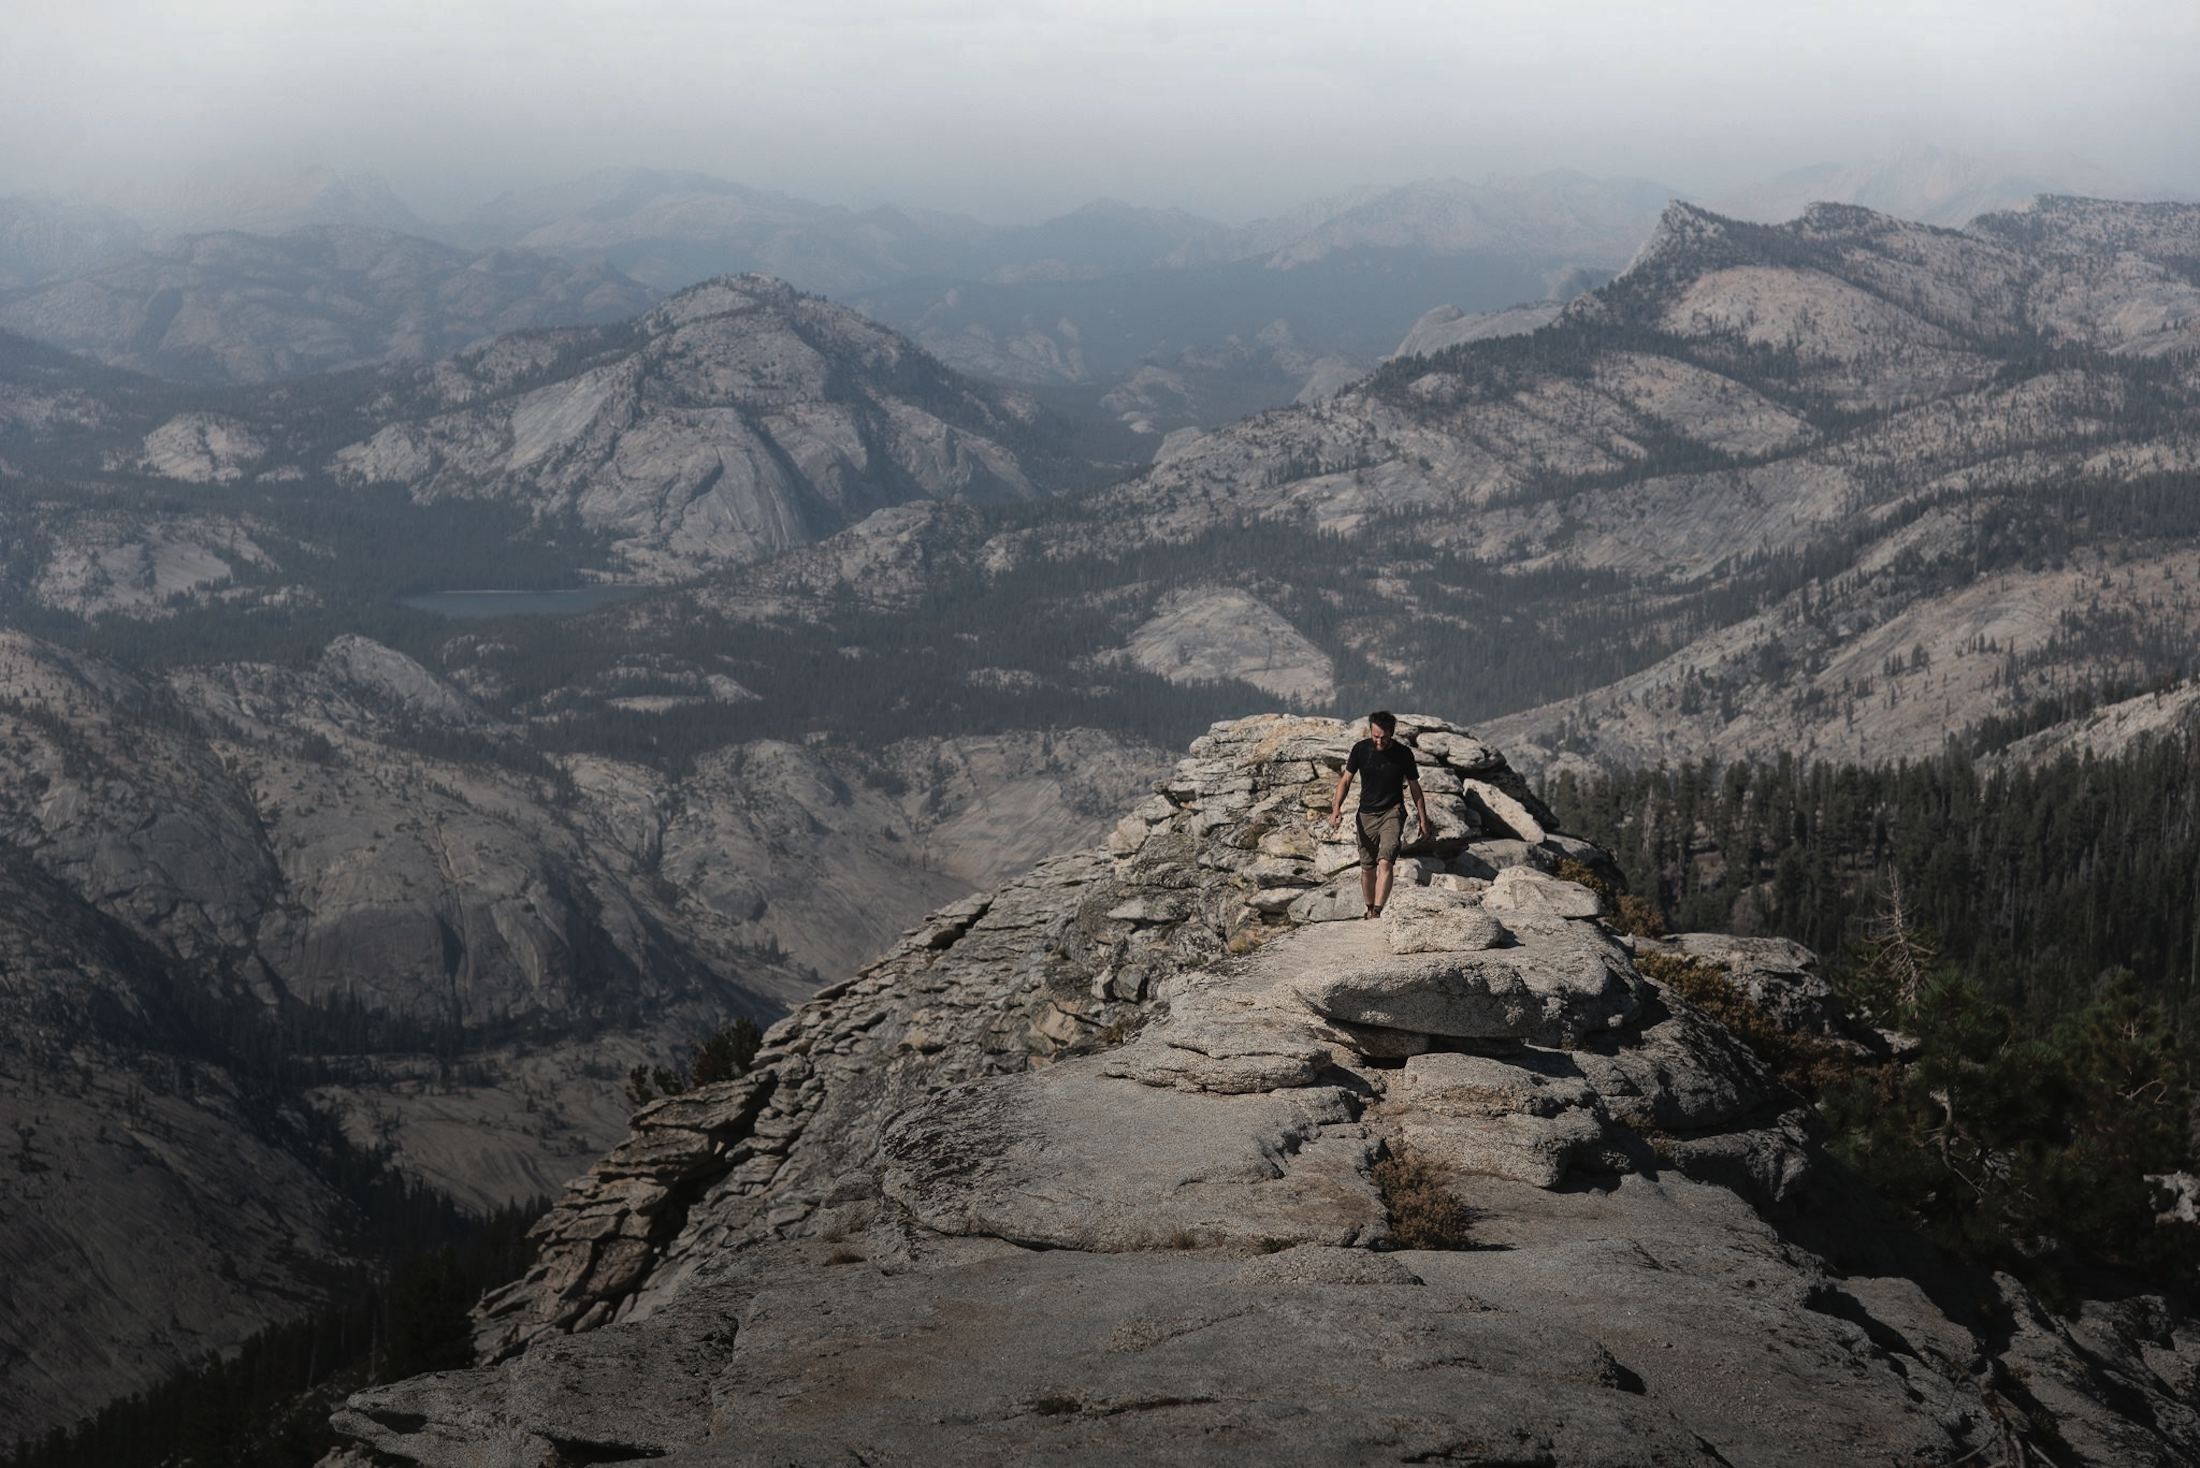 Clouds Rest hike from America's Best Day Hikes Book